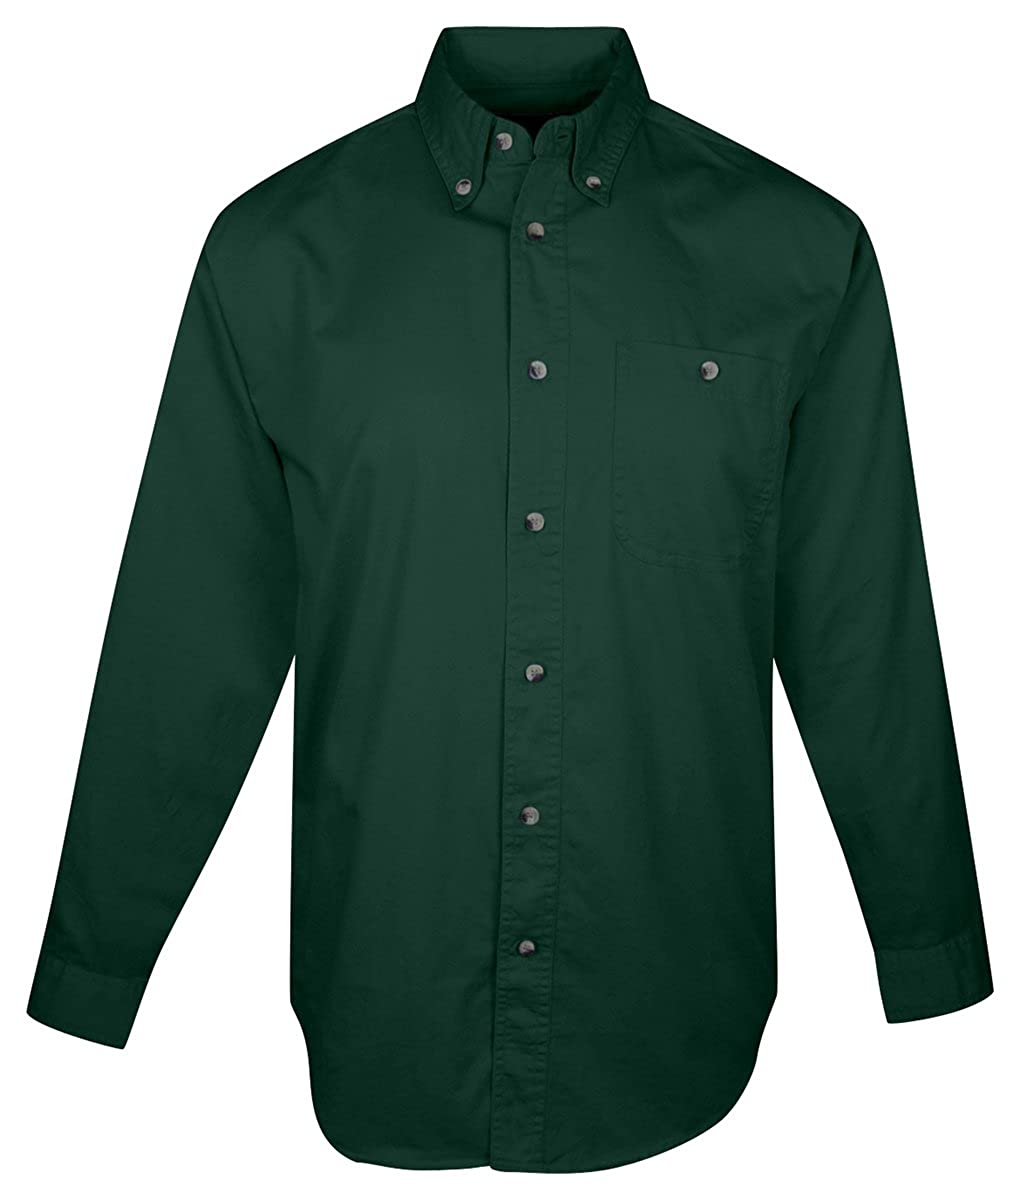 Tri-Mountain Big and Tall 6 oz Cotton Long Sleeve Twill Shirt Forest Green